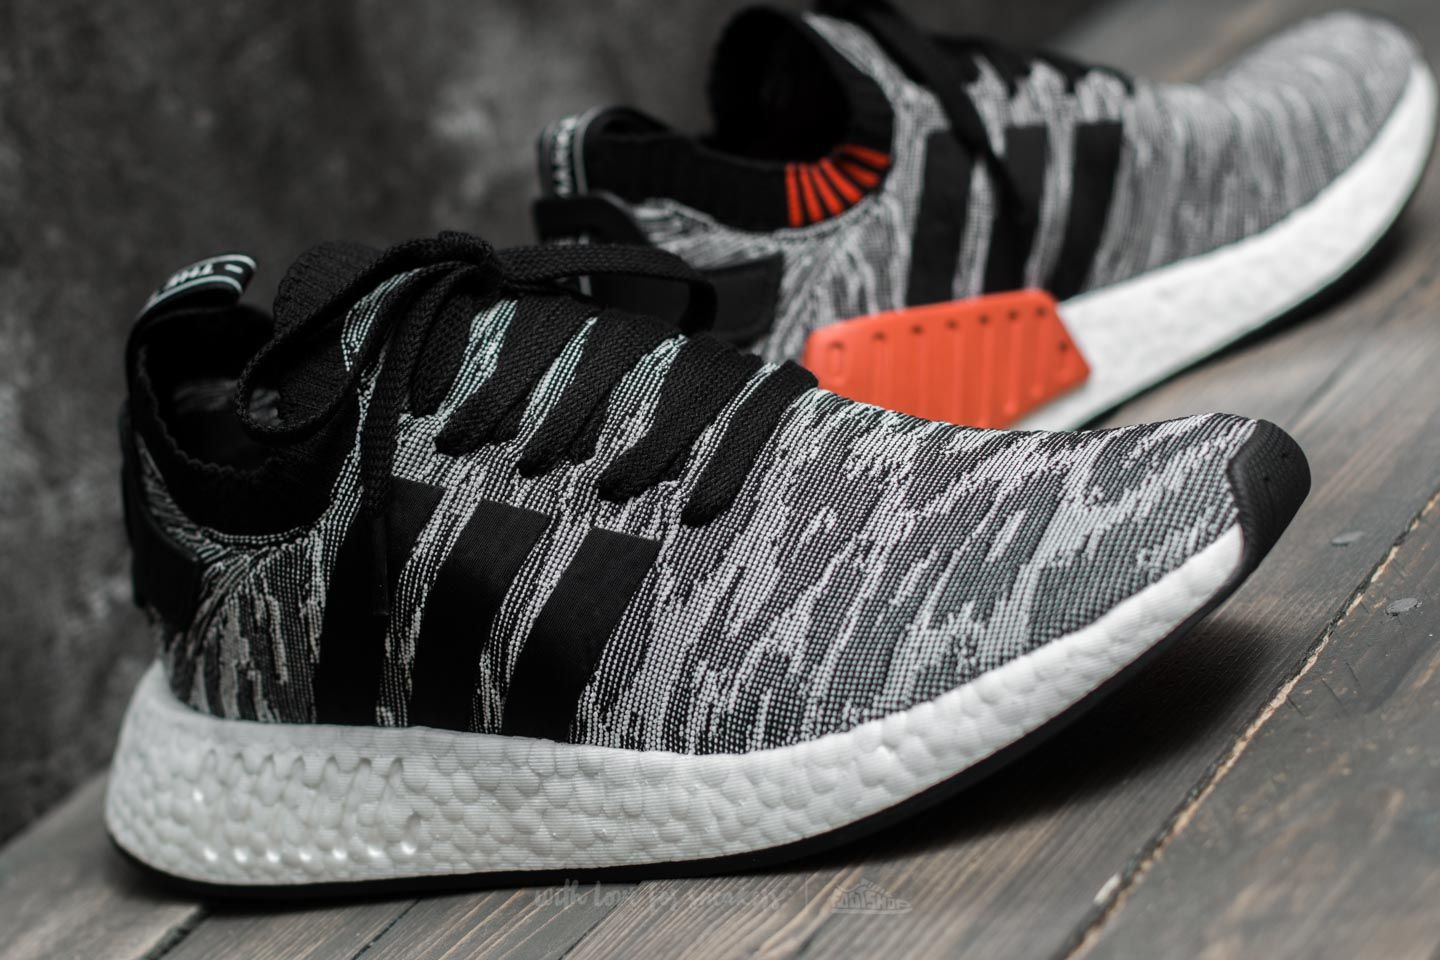 adidas NMD_R2 Primeknit in NOSS